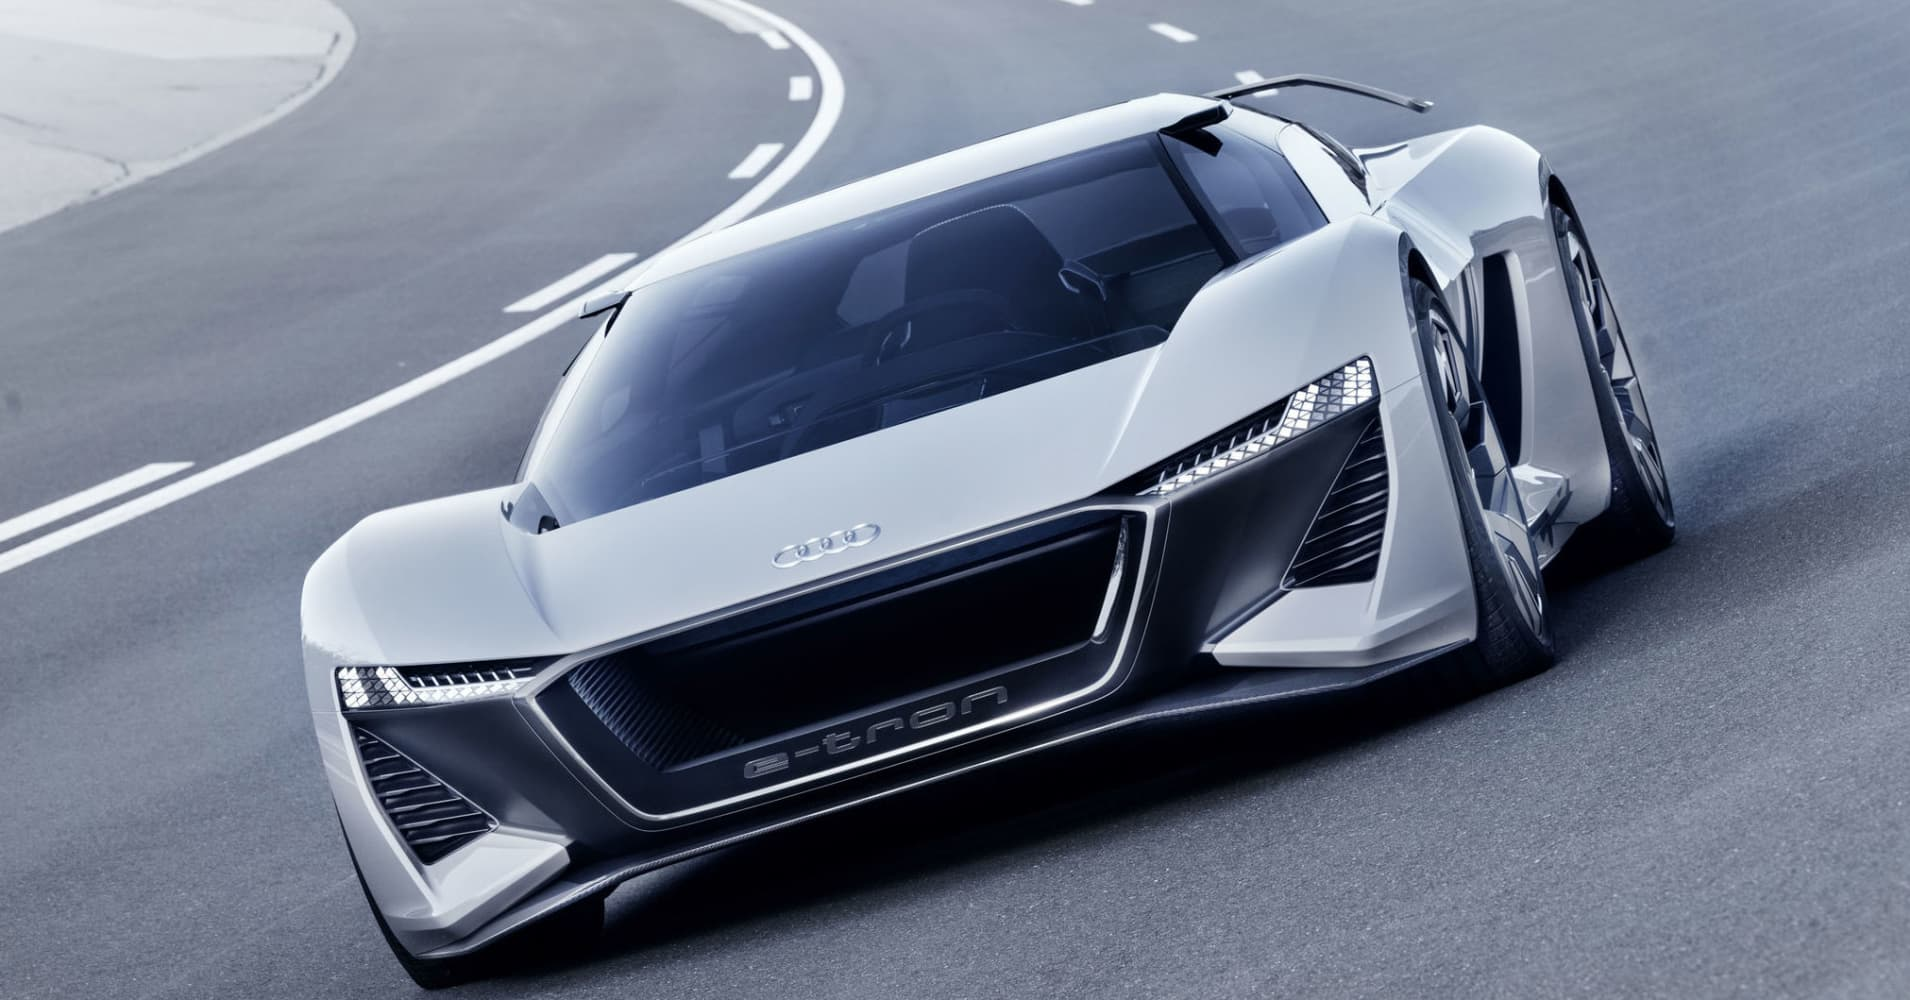 Audis New Electric Car Goes From To In Seconds - Audi super car